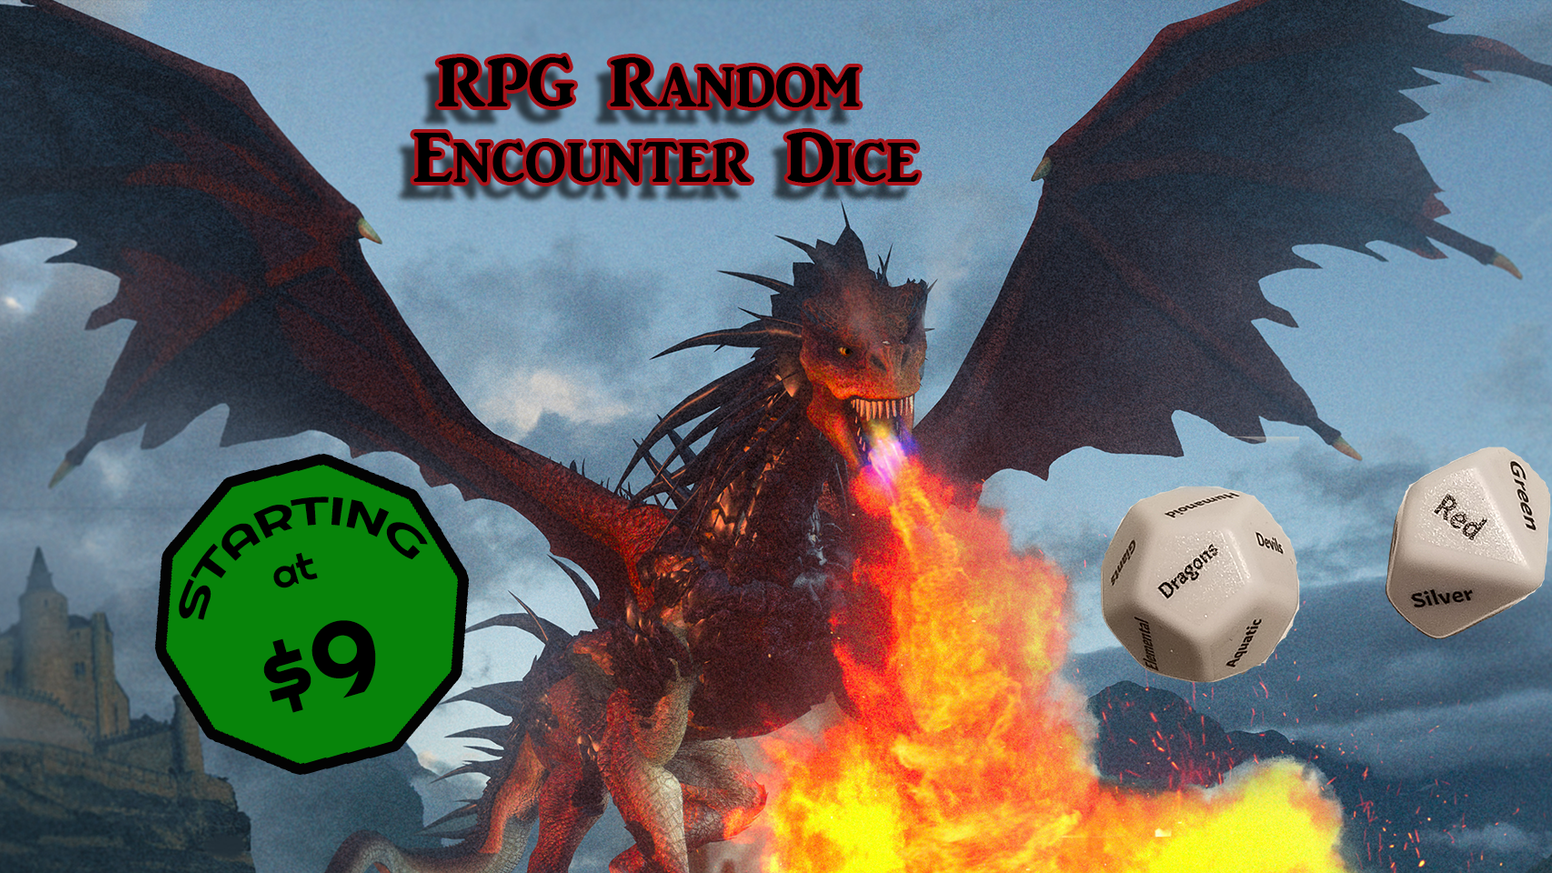 Easy to use Random Encounter Dice for your Fantasy RPG game. Usable with 5E, PF, B/X, S&W, 1E/2E, DCC and more.